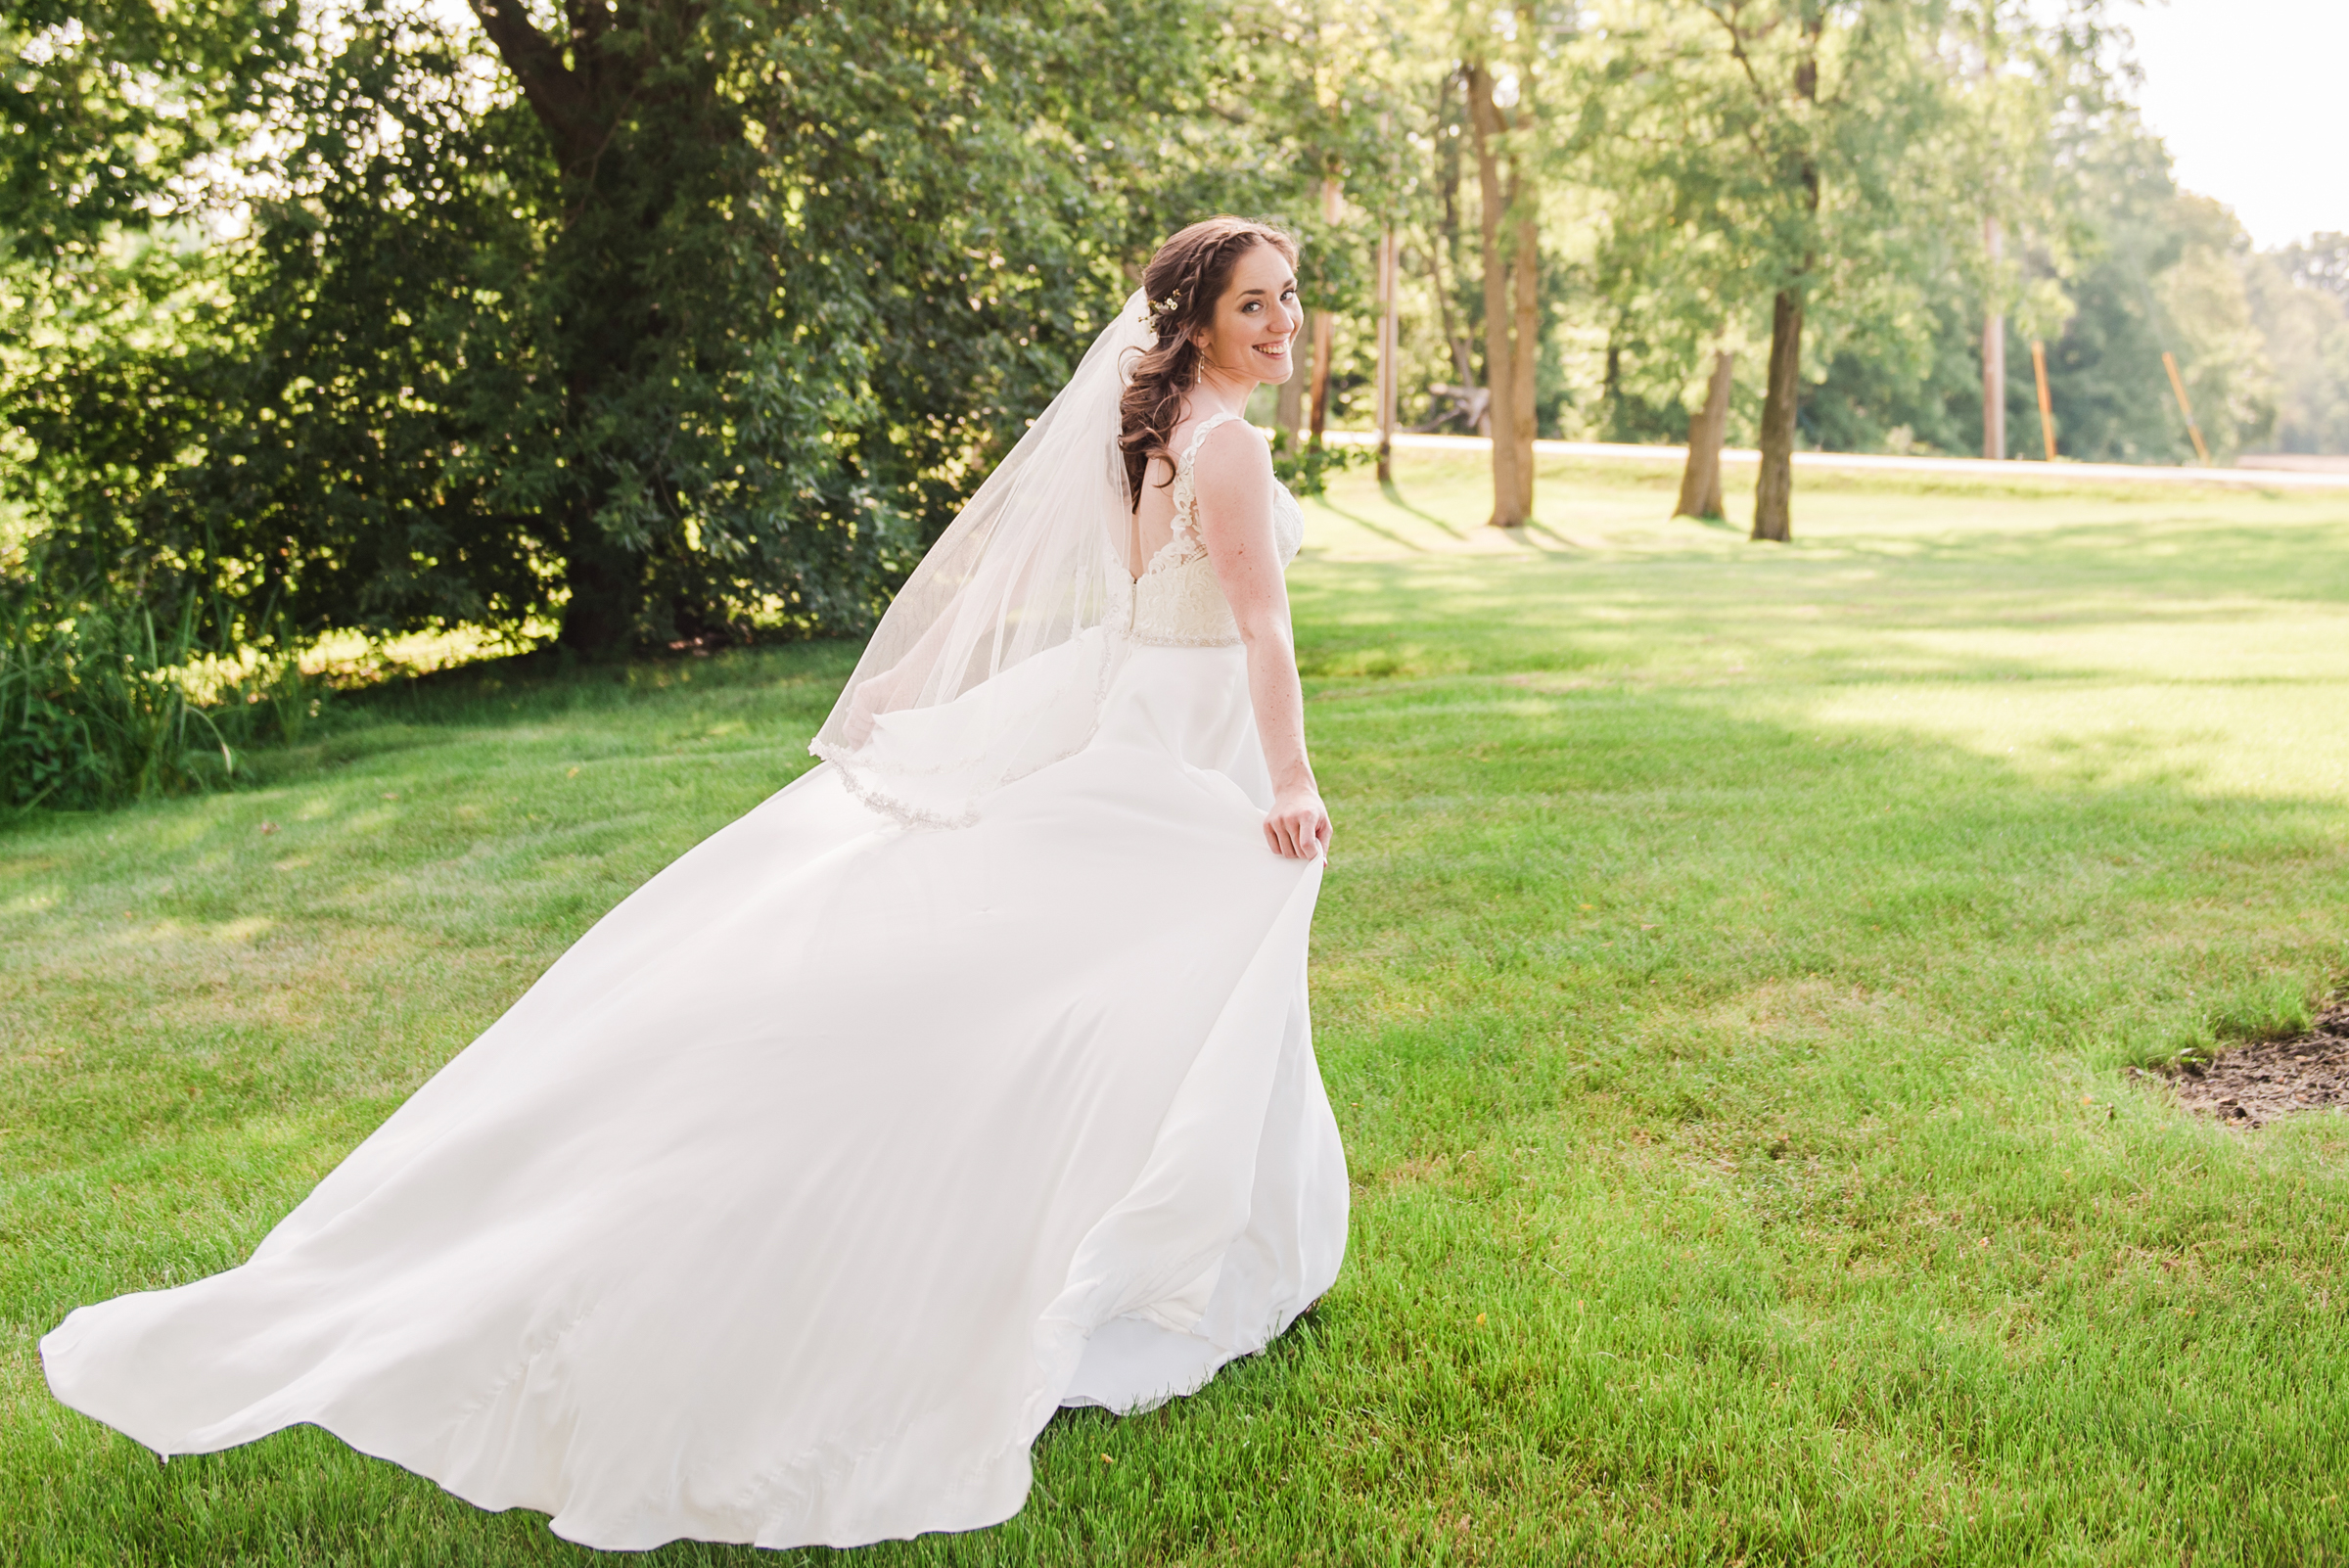 JILL_STUDIO_Wedding_JILL_STUDIO_Rochester_NY_Photographer_14-DSC_2753.jpg